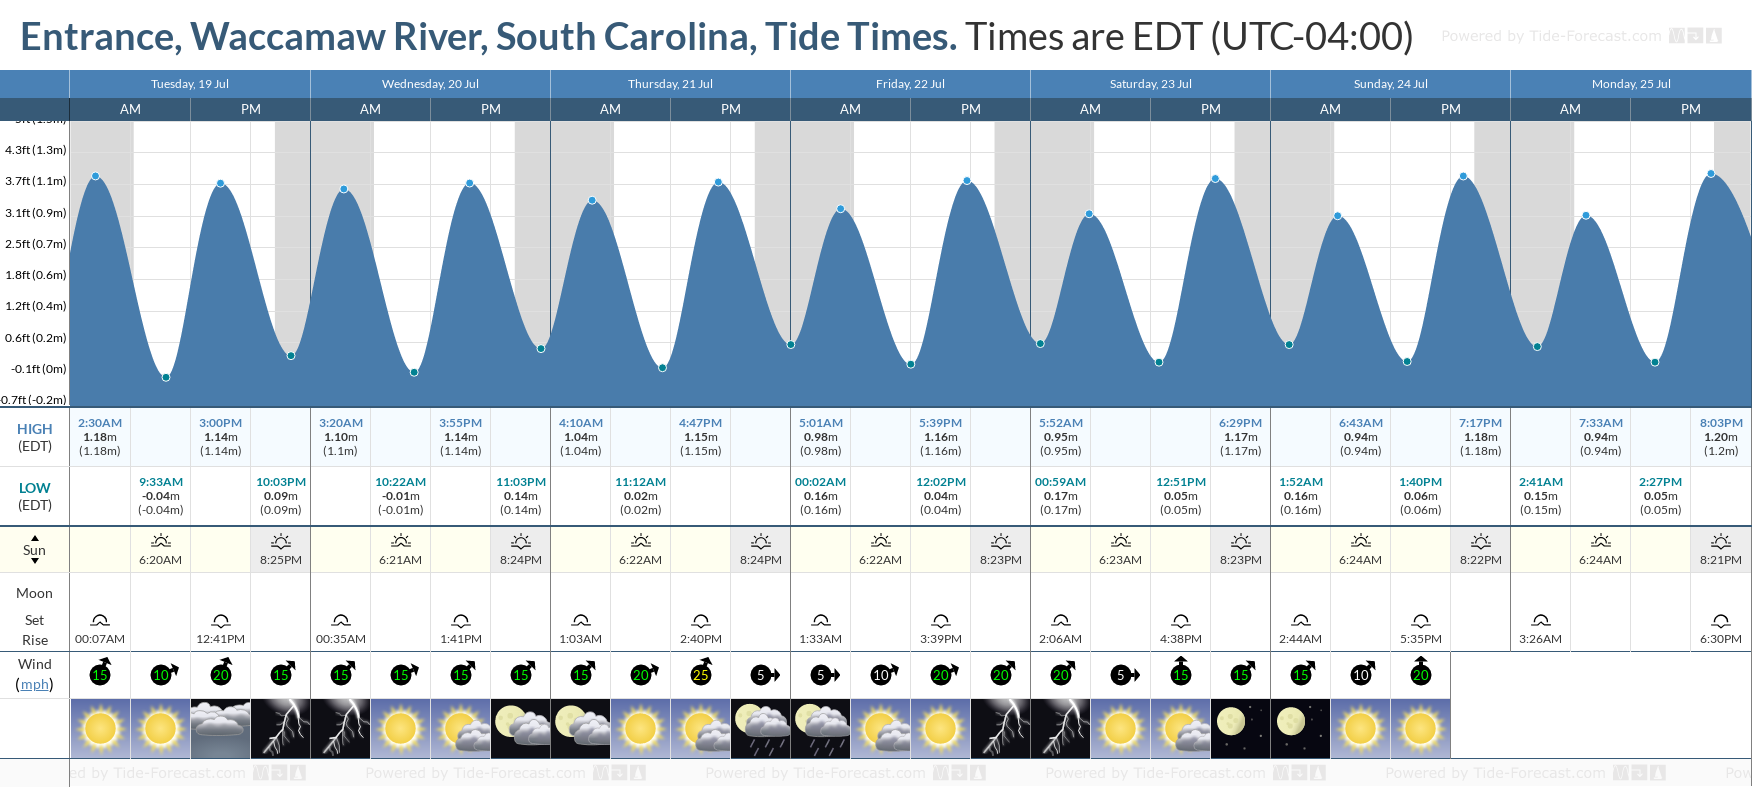 Entrance, Waccamaw River, South Carolina Tide Chart including high and low tide tide times for the next 7 days